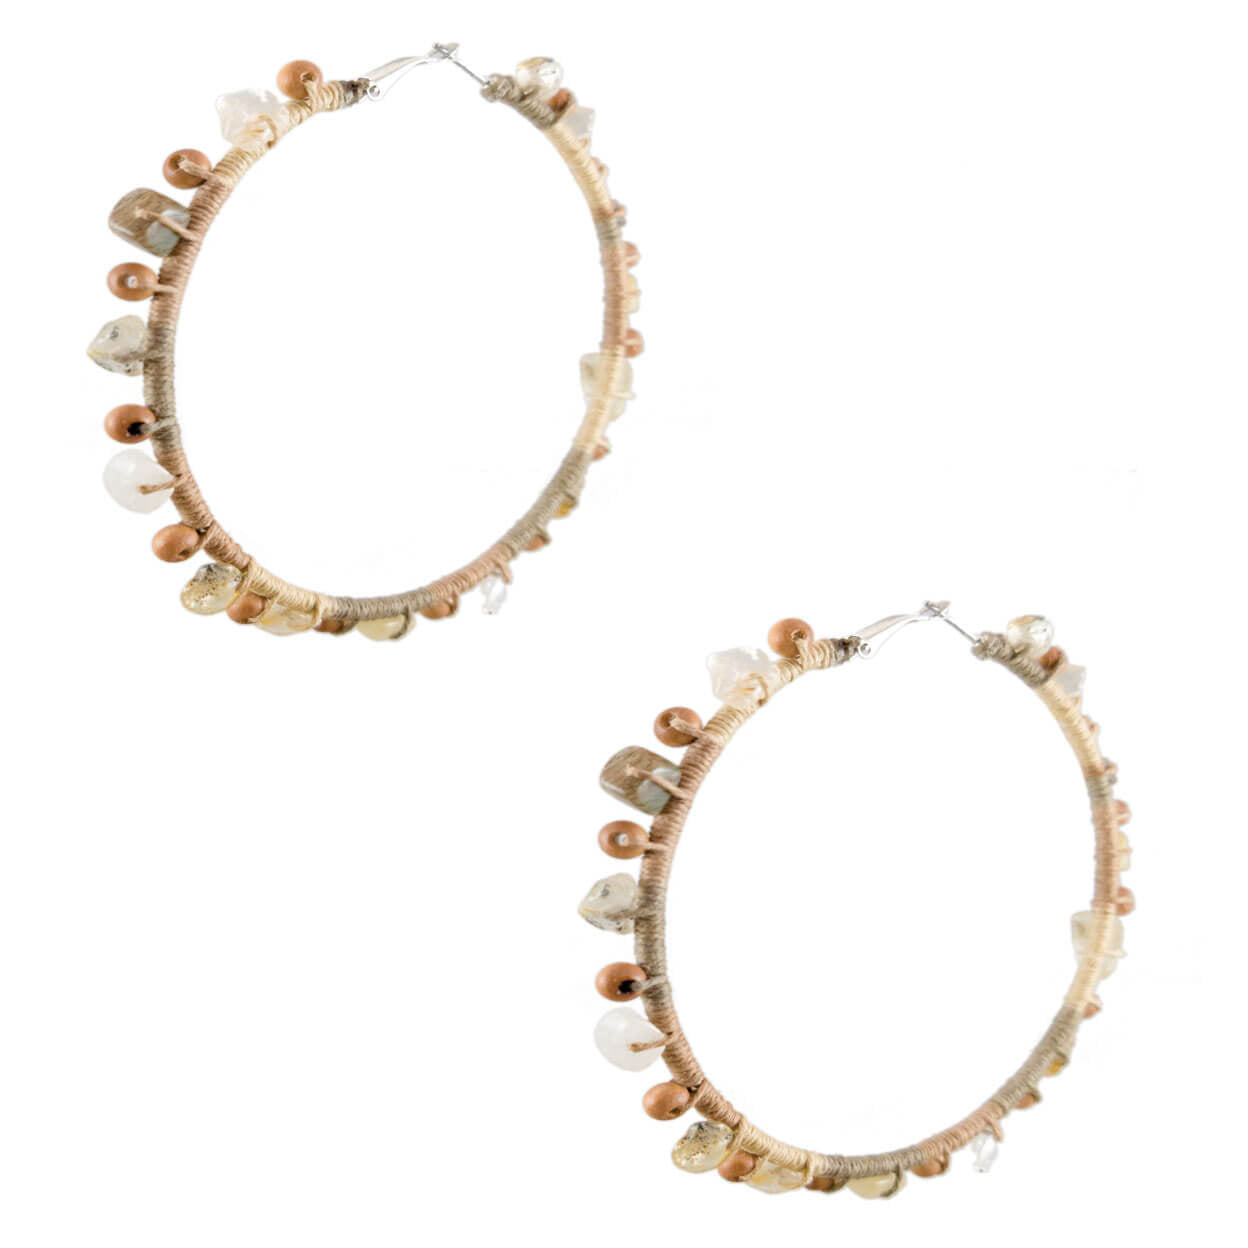 tropical beach hoop earrings wrapped in a natural ombre color hemp with wood and gemstones